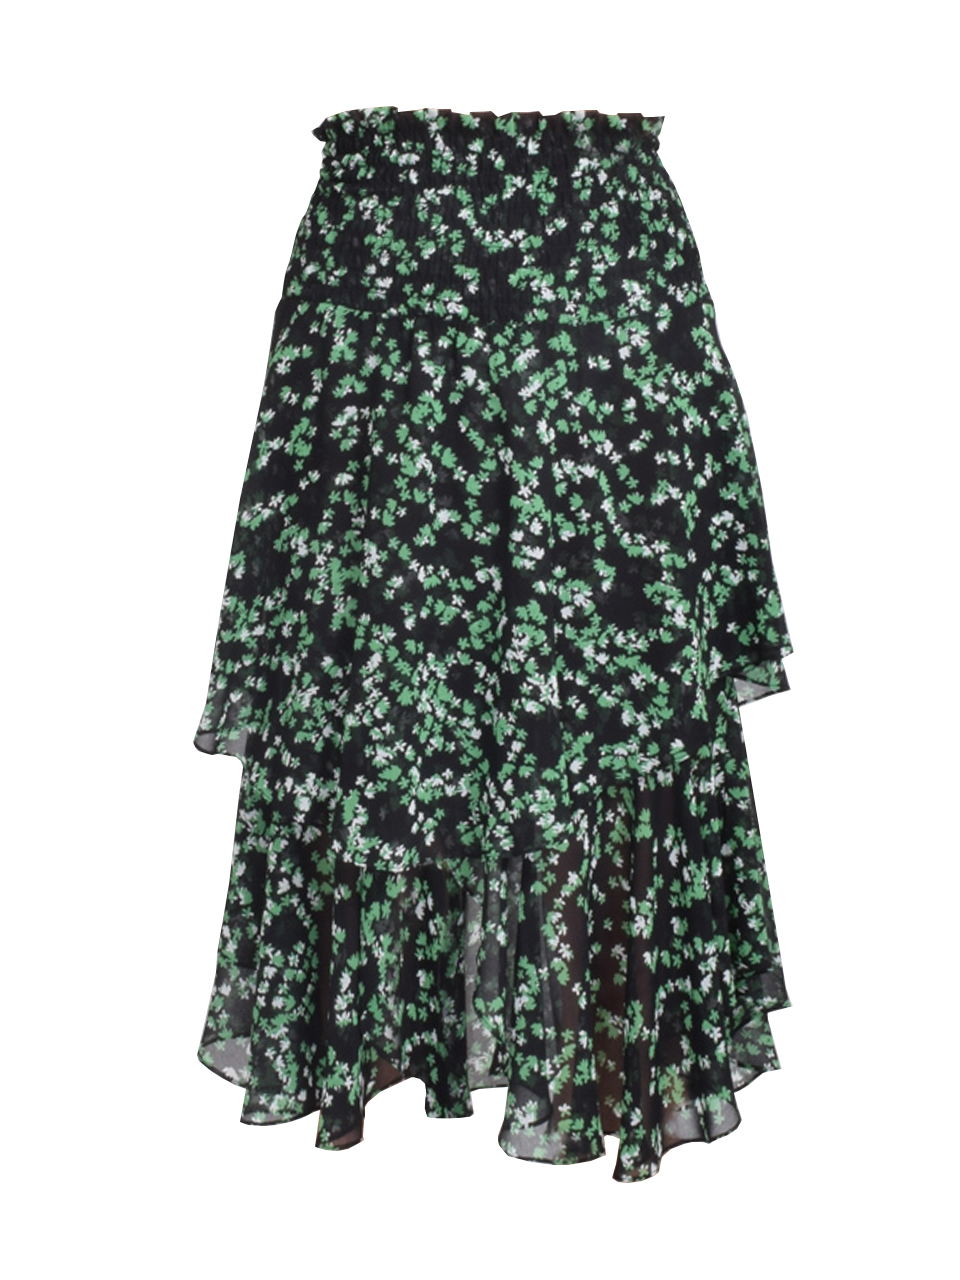 Sonora Midi Skirt in Green